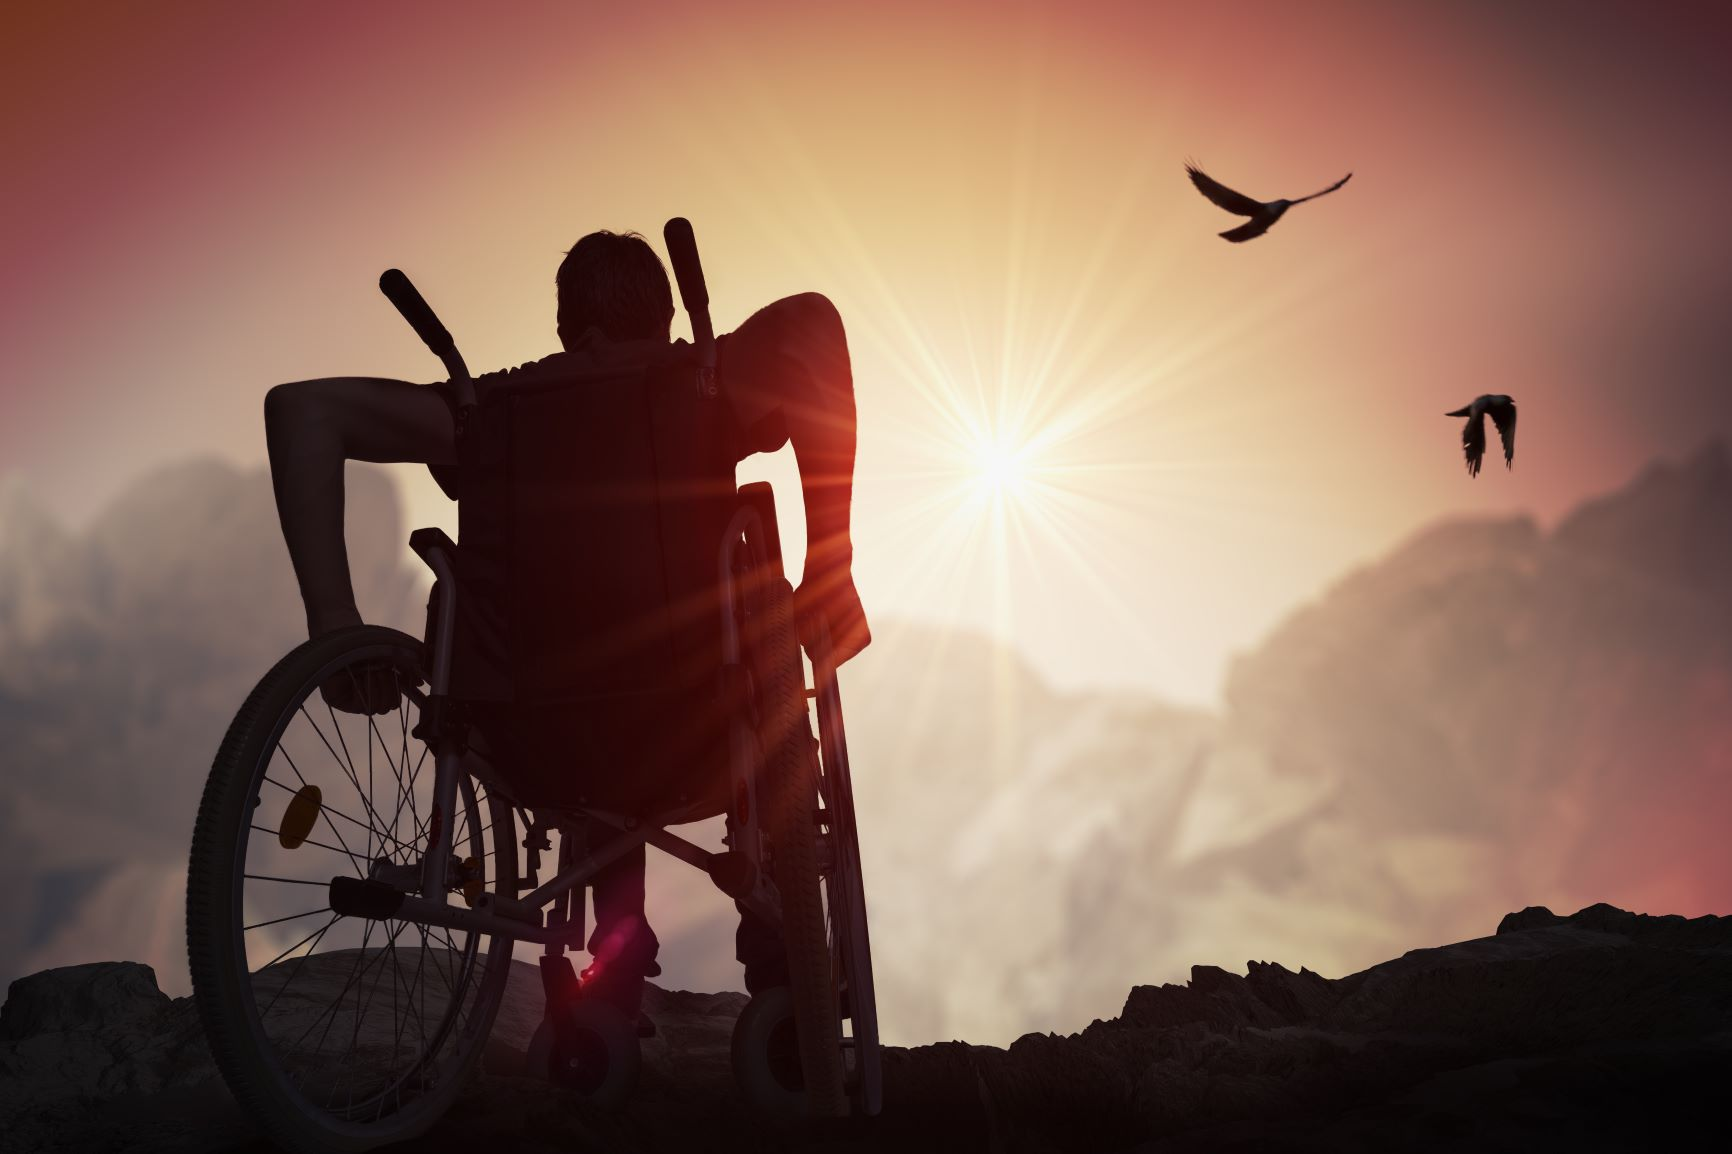 person in a wheelchair looking out at the landscape. Image for decorative purposes only